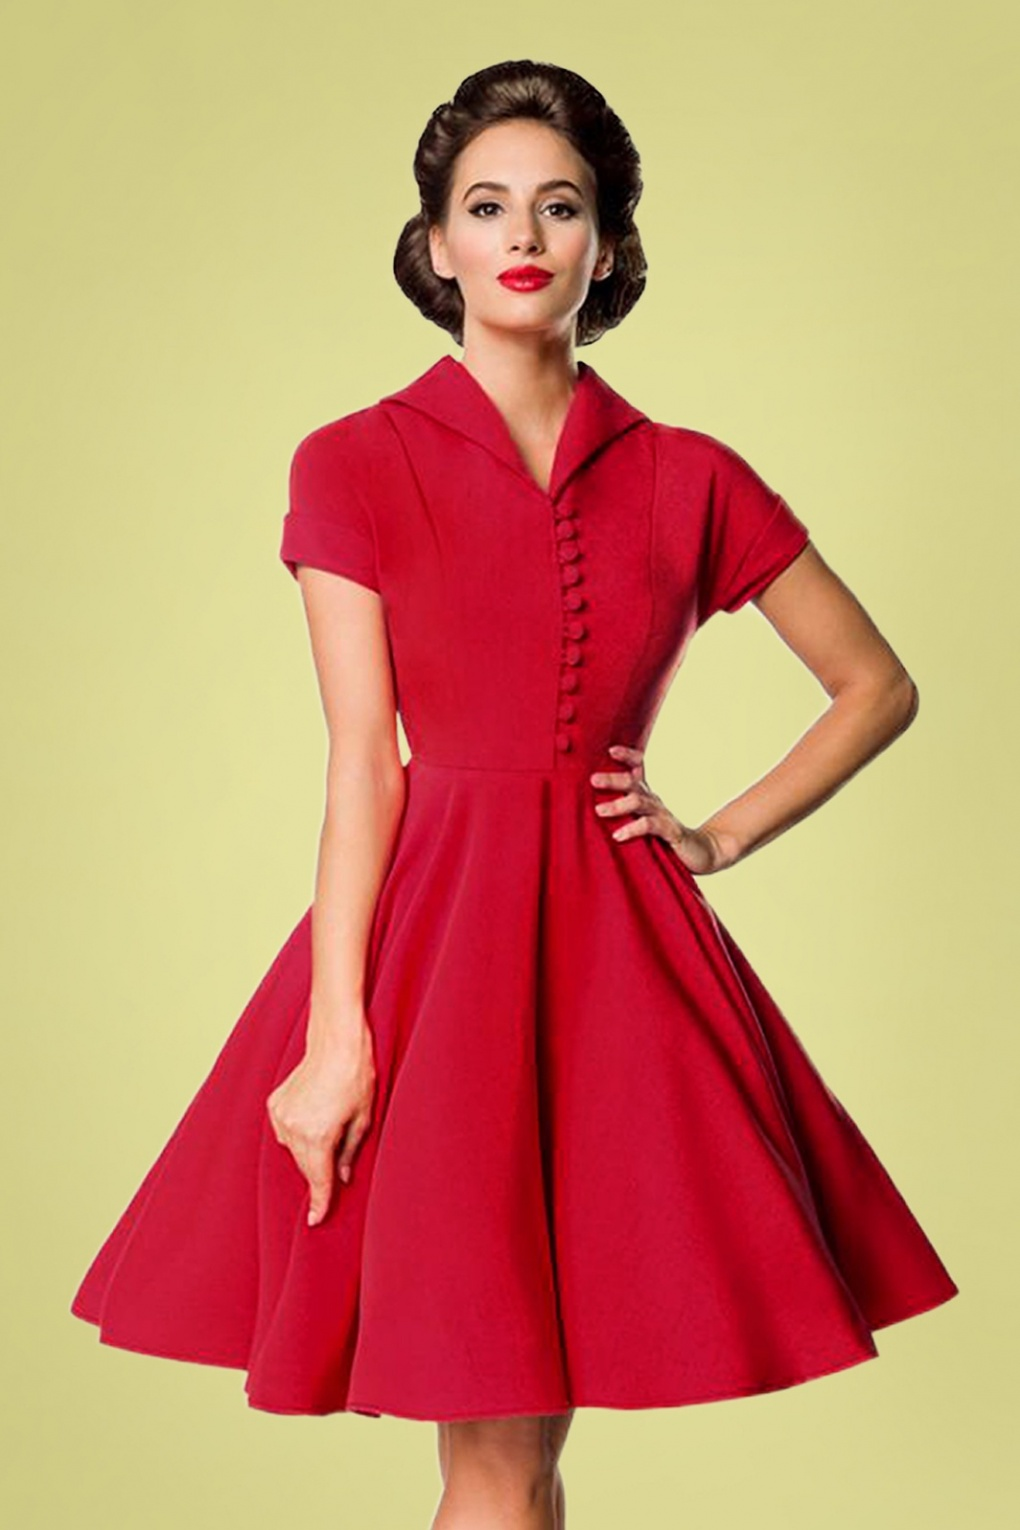 1940s Fashion Advice for Tall Women 40s Valencia Swing Dress in Deep Red £72.60 AT vintagedancer.com